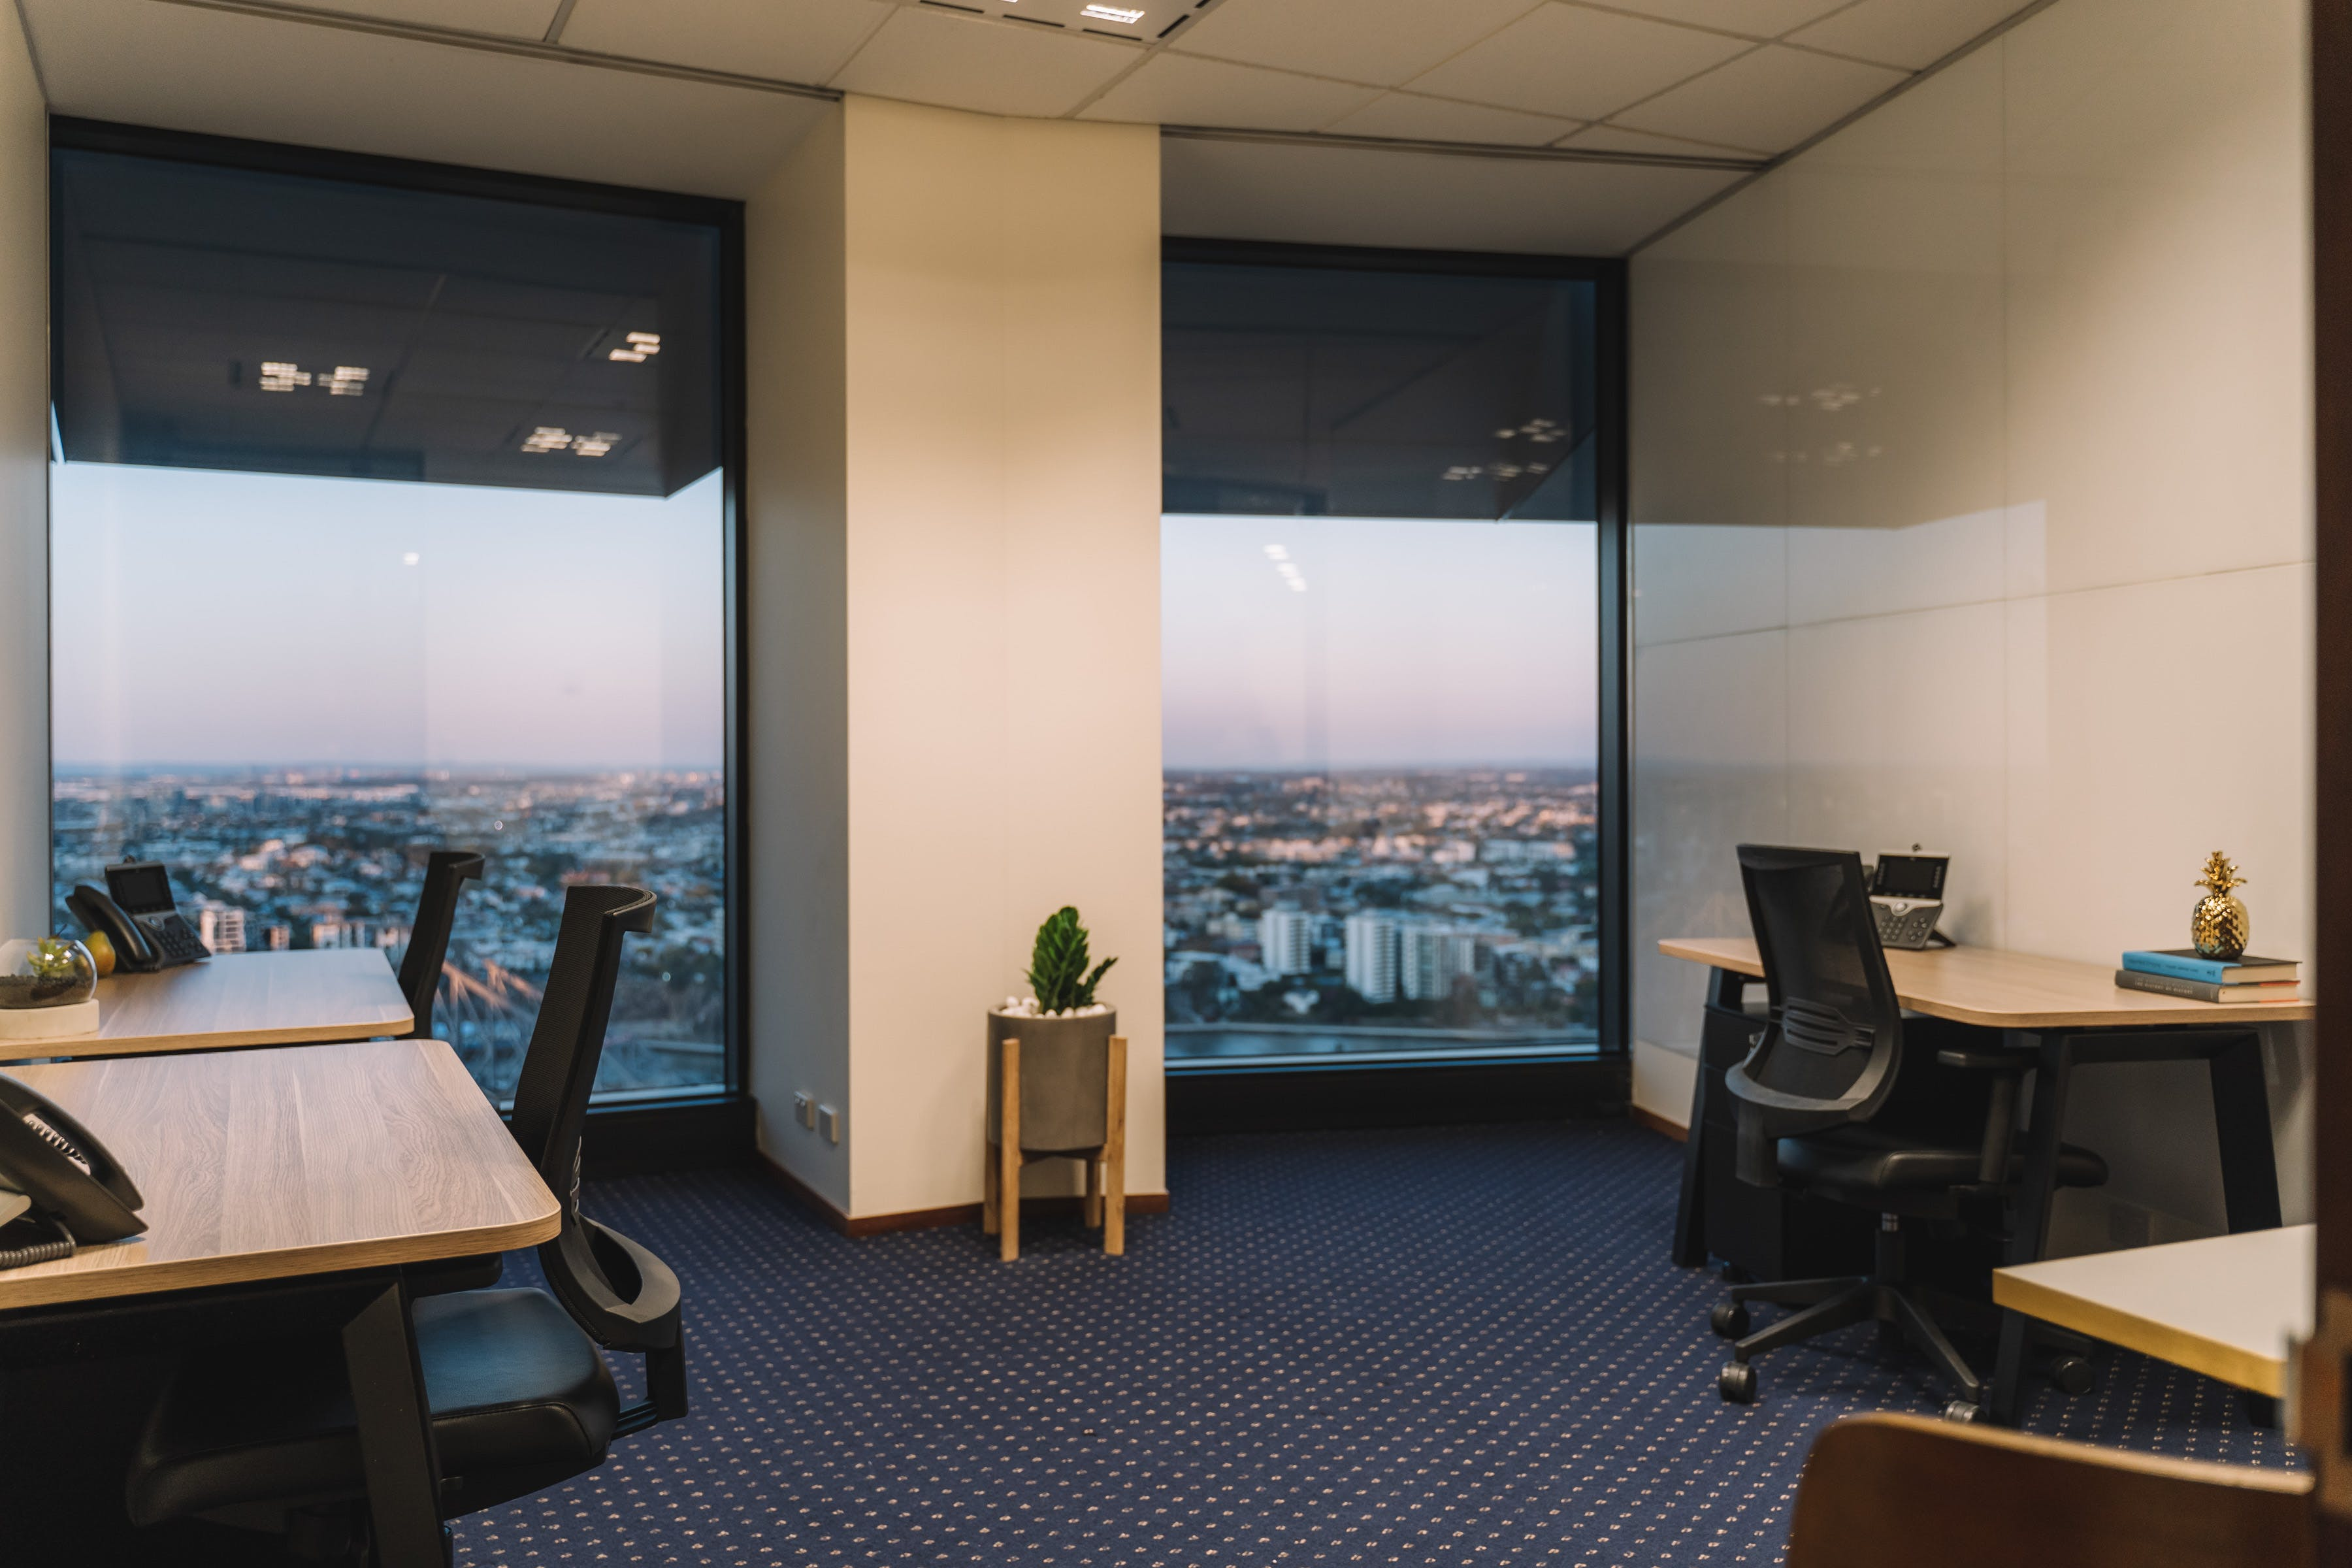 Collaborative 8-person workspace with amazing views of Brisbane CBD, serviced office at Riparian Plaza, image 11